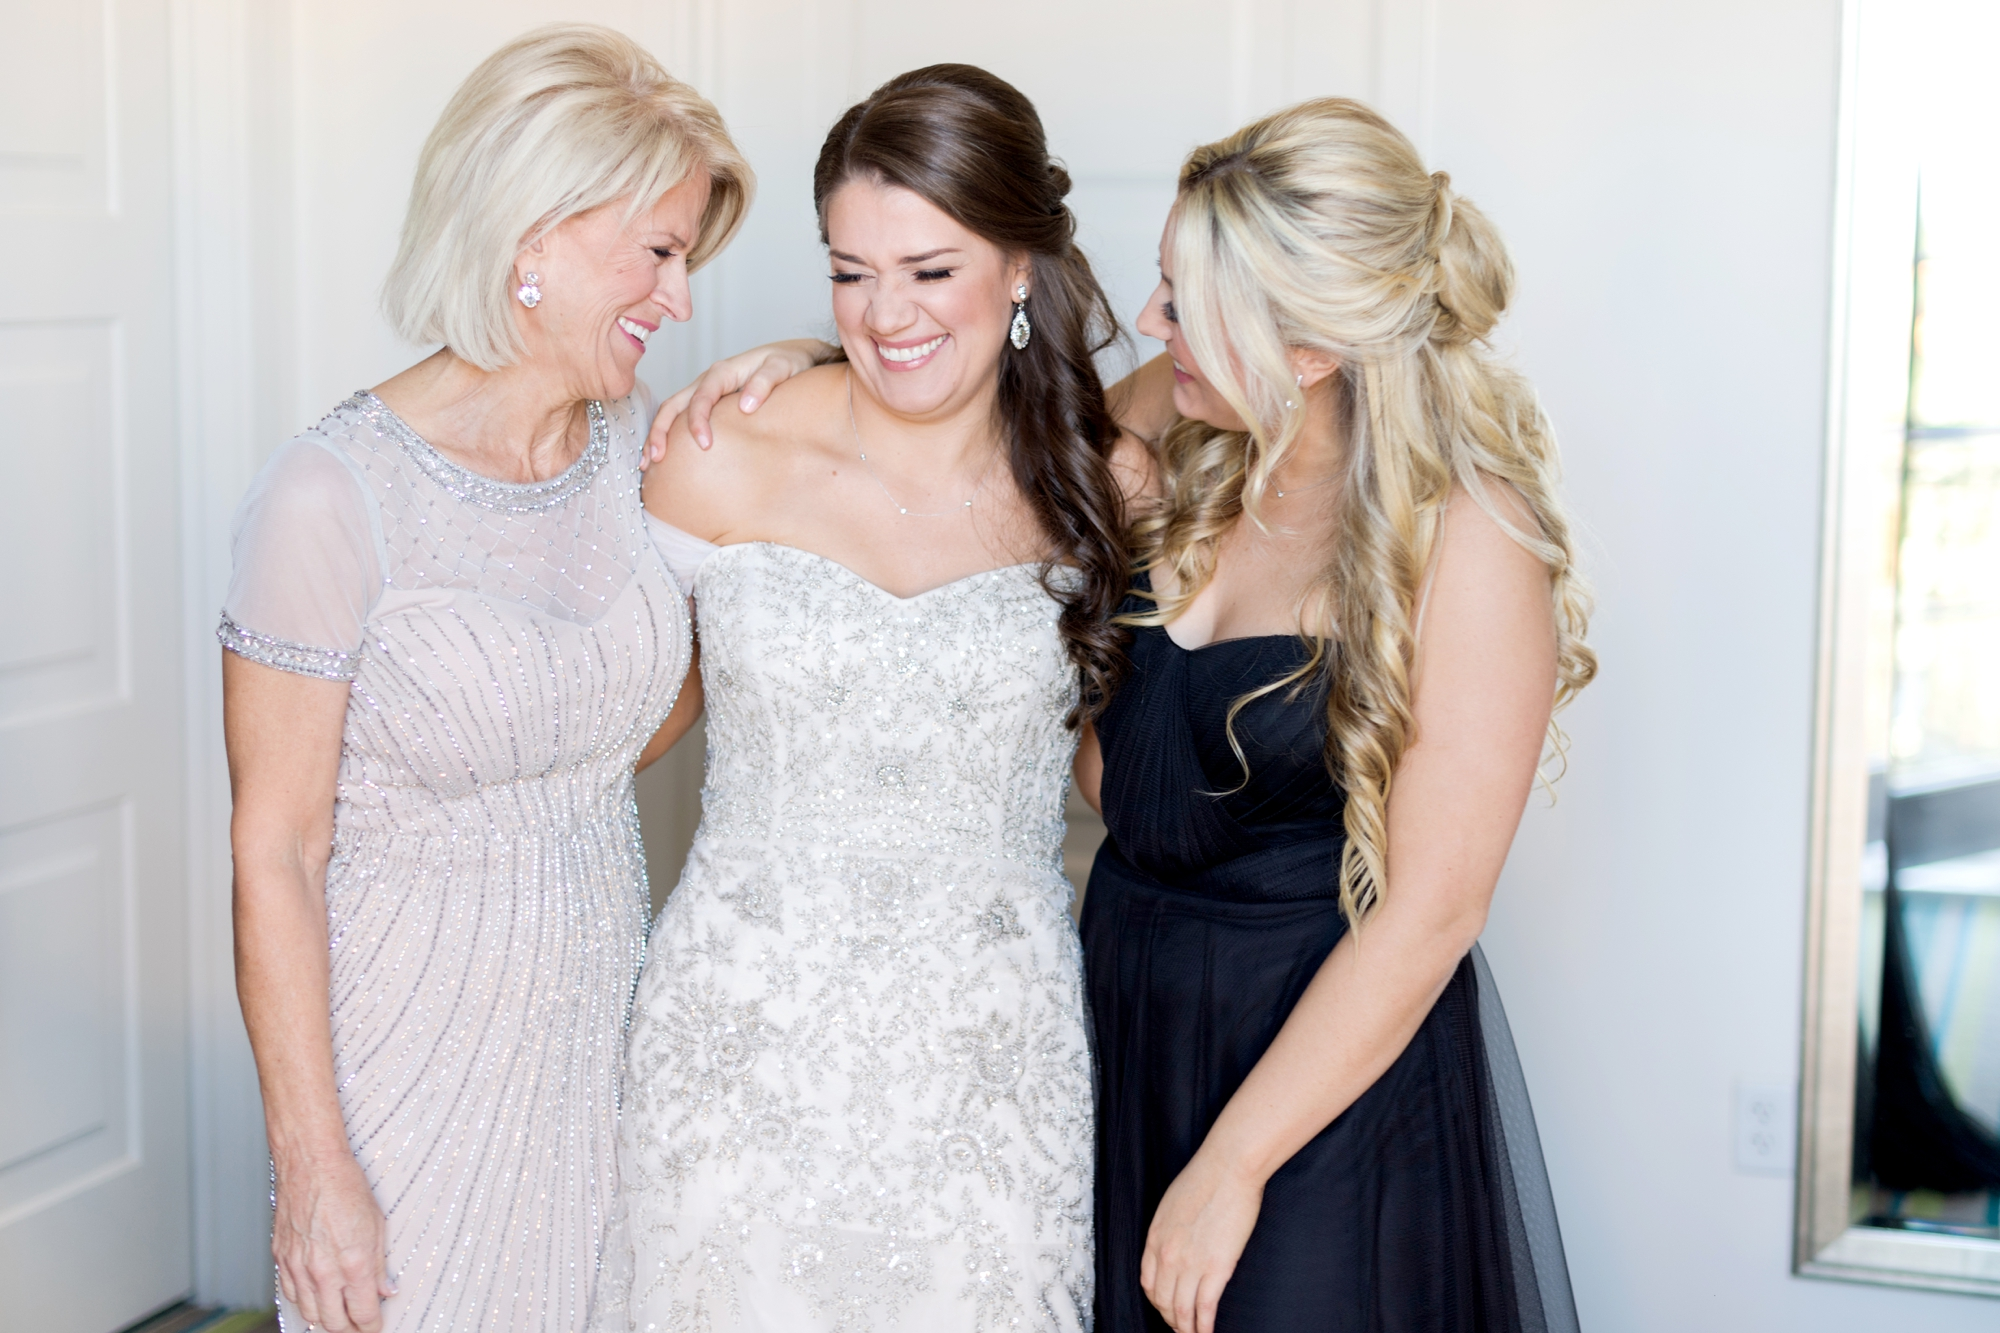 wedding photos with mom you have to take